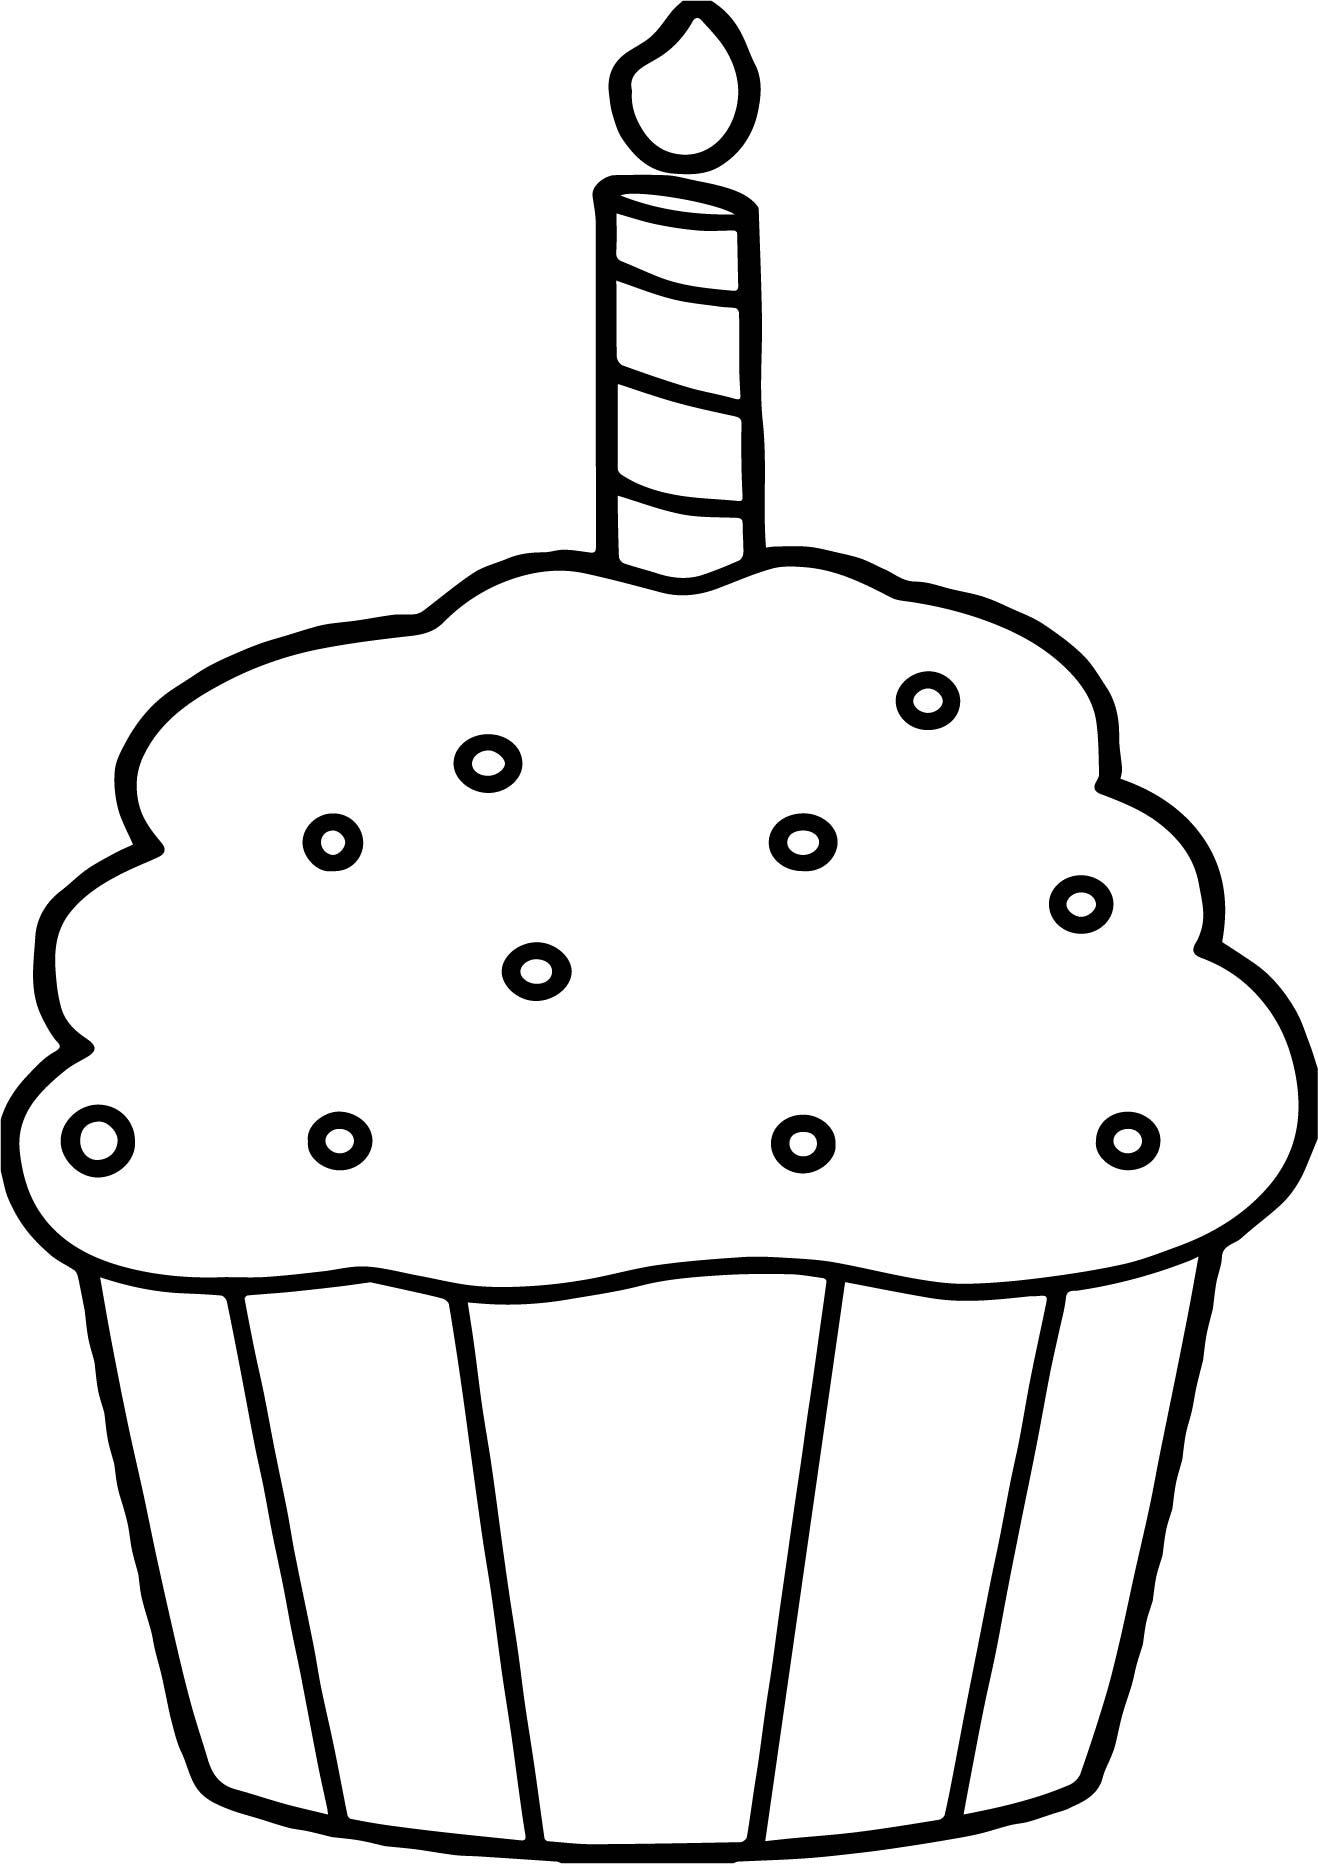 coloring pages of cupcakes - birthday cupcake coloring page